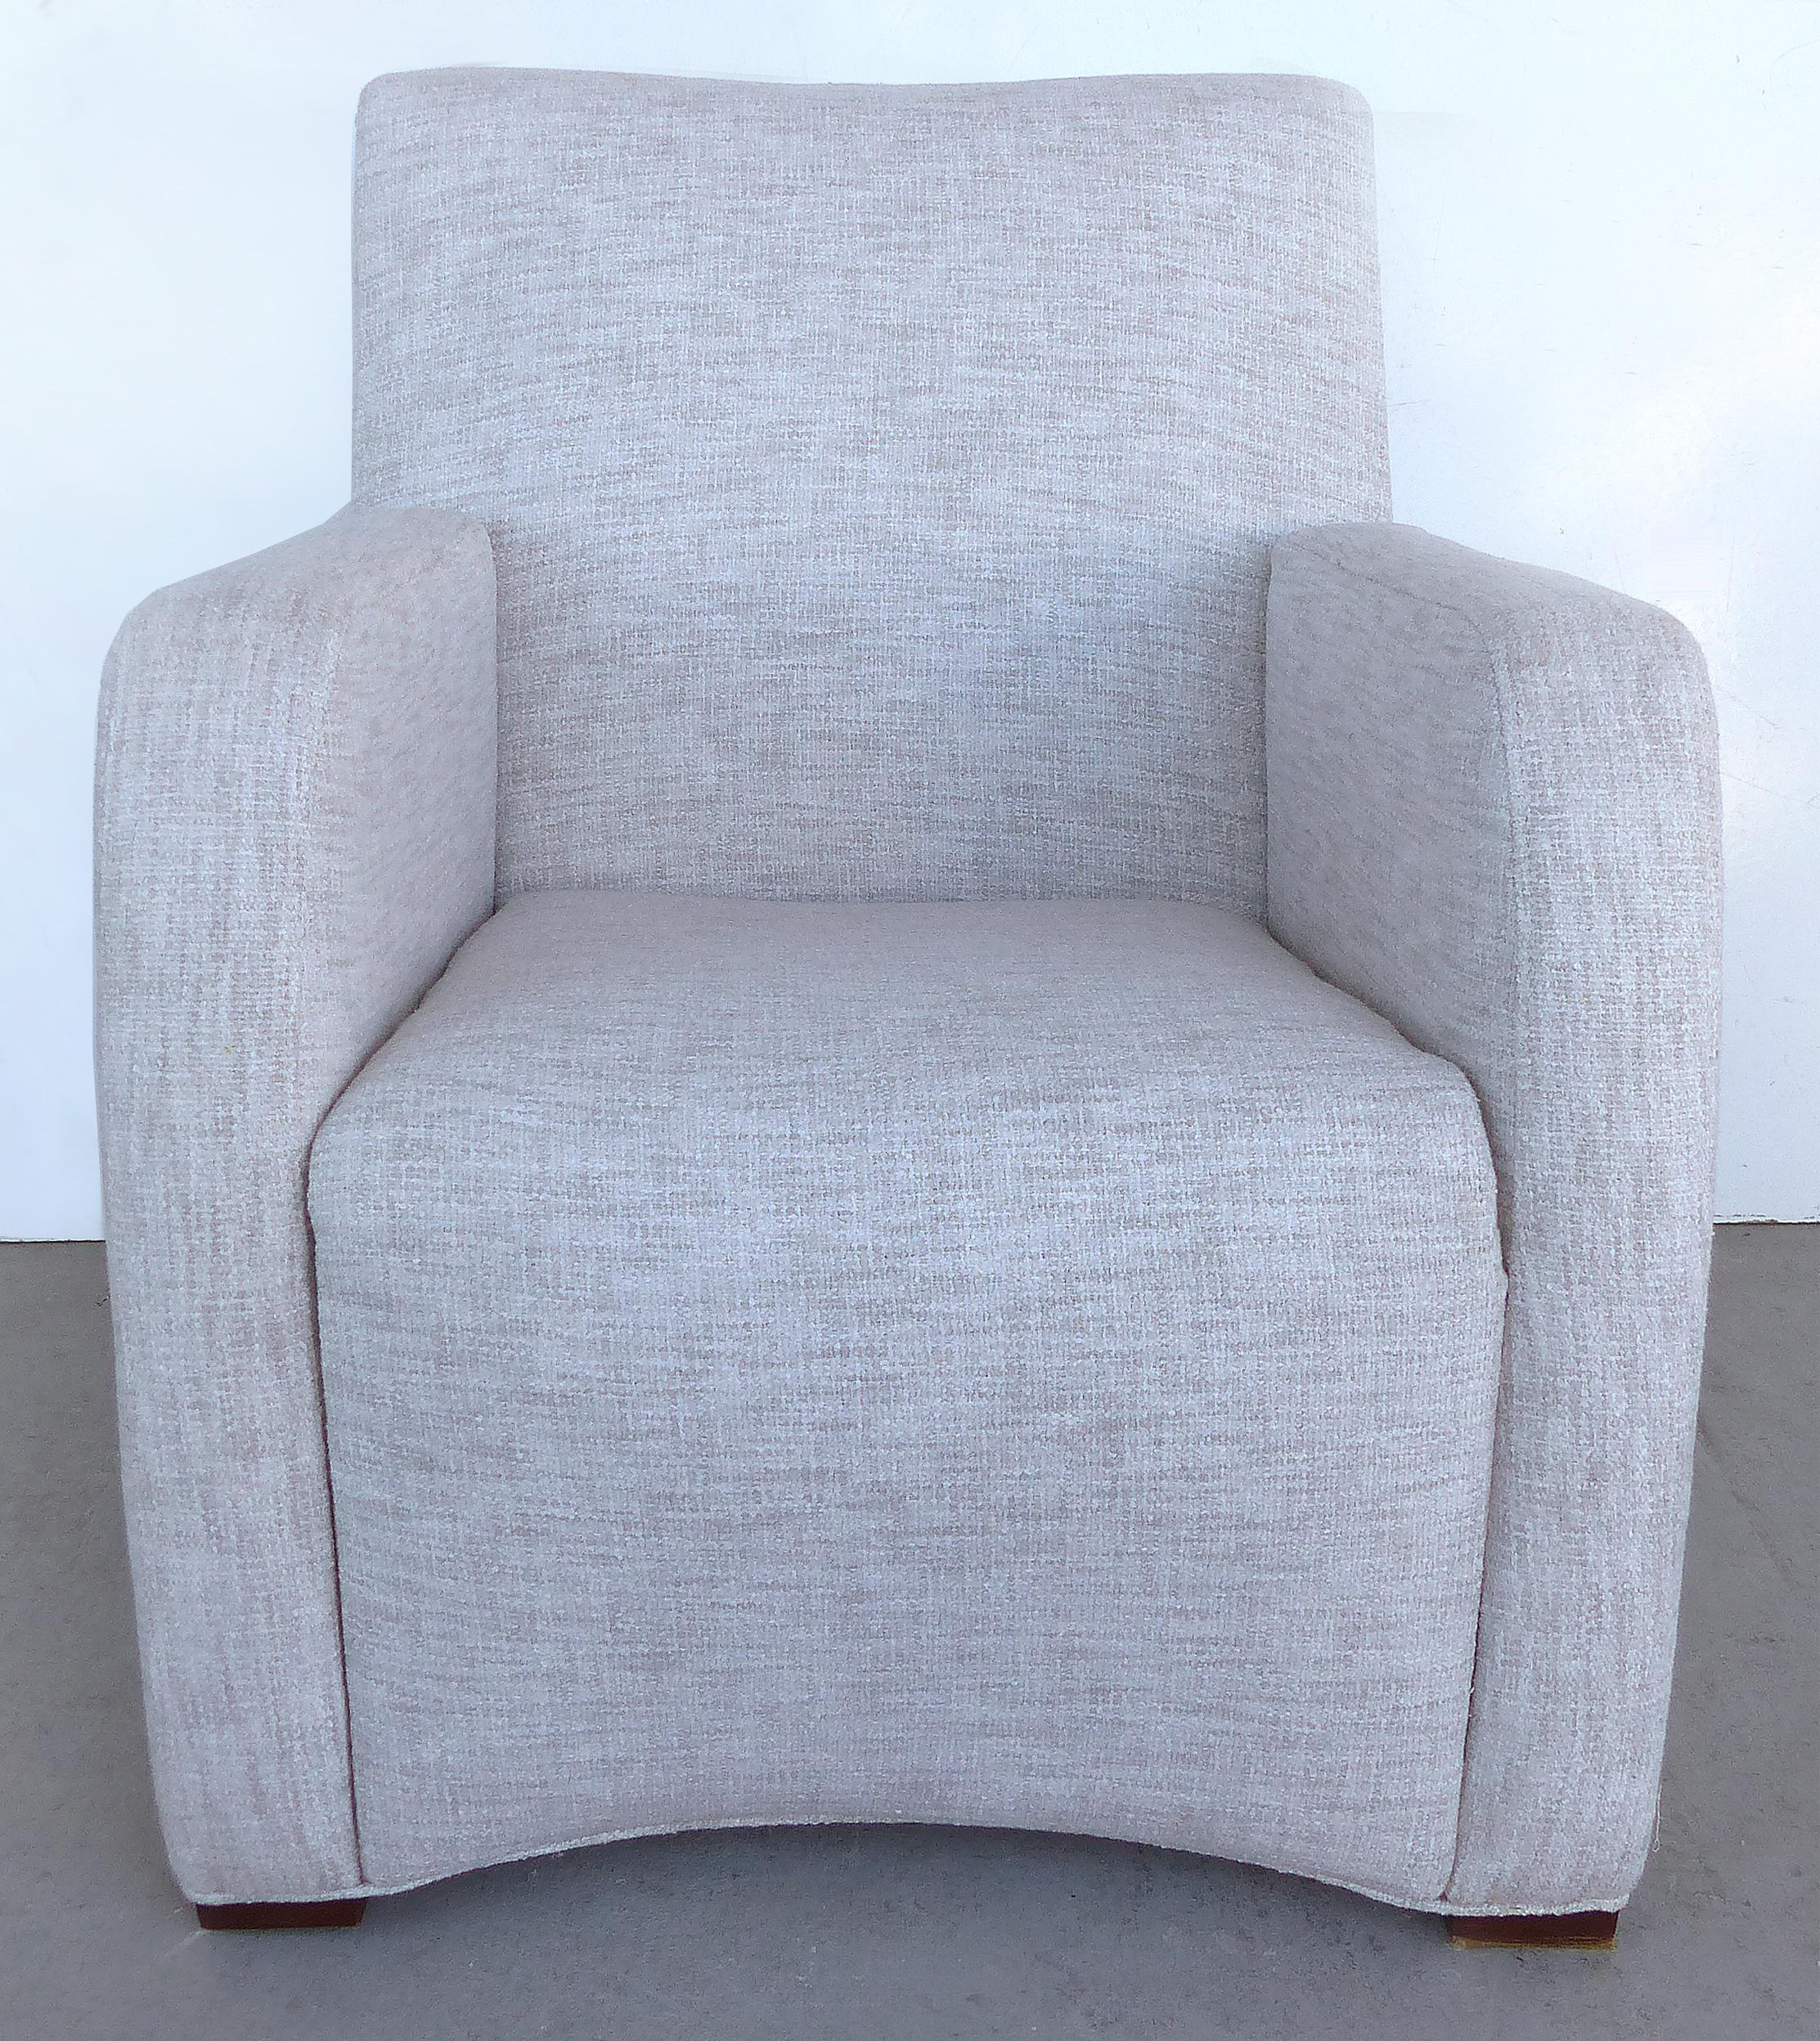 Offered For Sale Is A Newly Upholstered Pair Of Mid Century Modern Club  Chairs.